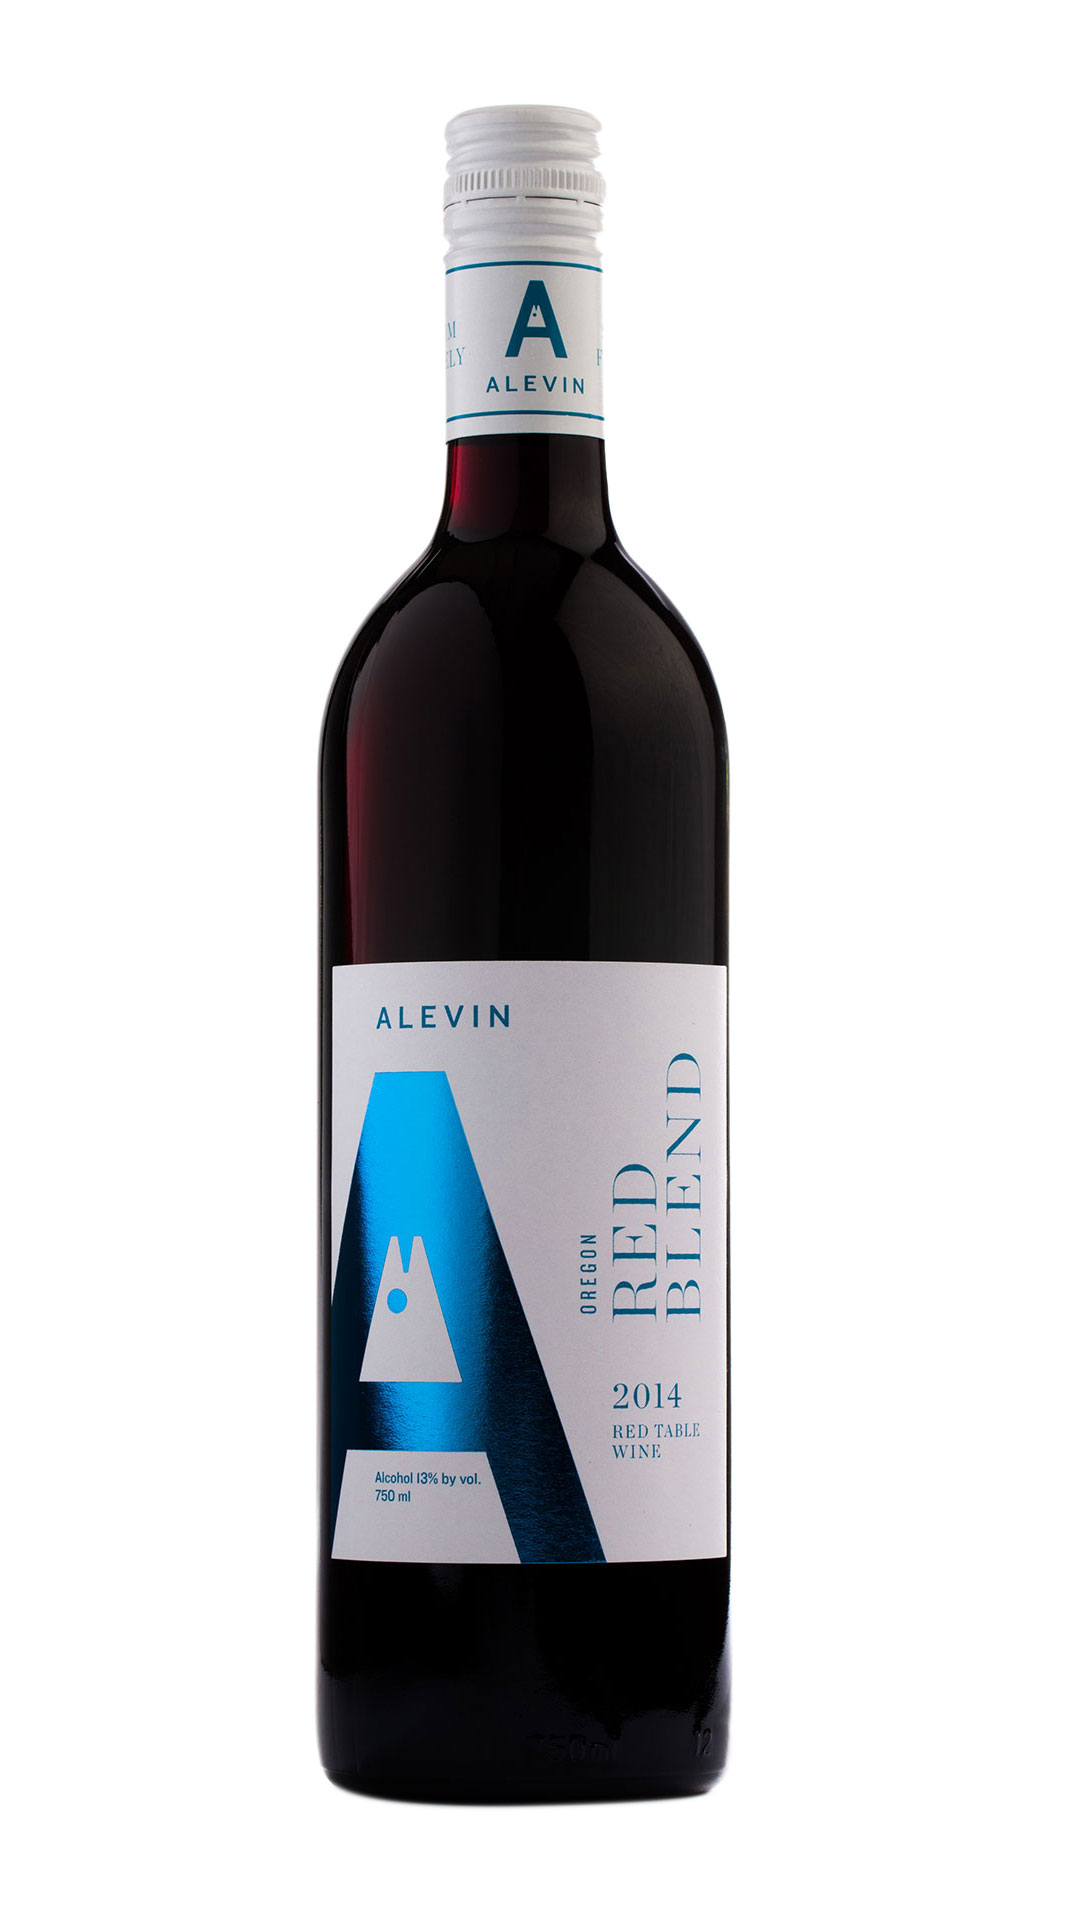 2014 Red Blend - Our 2014 Red Blend has been aged in French oak barrels and has bold flavors of dark fruit and spice, leading to a memorable finish.